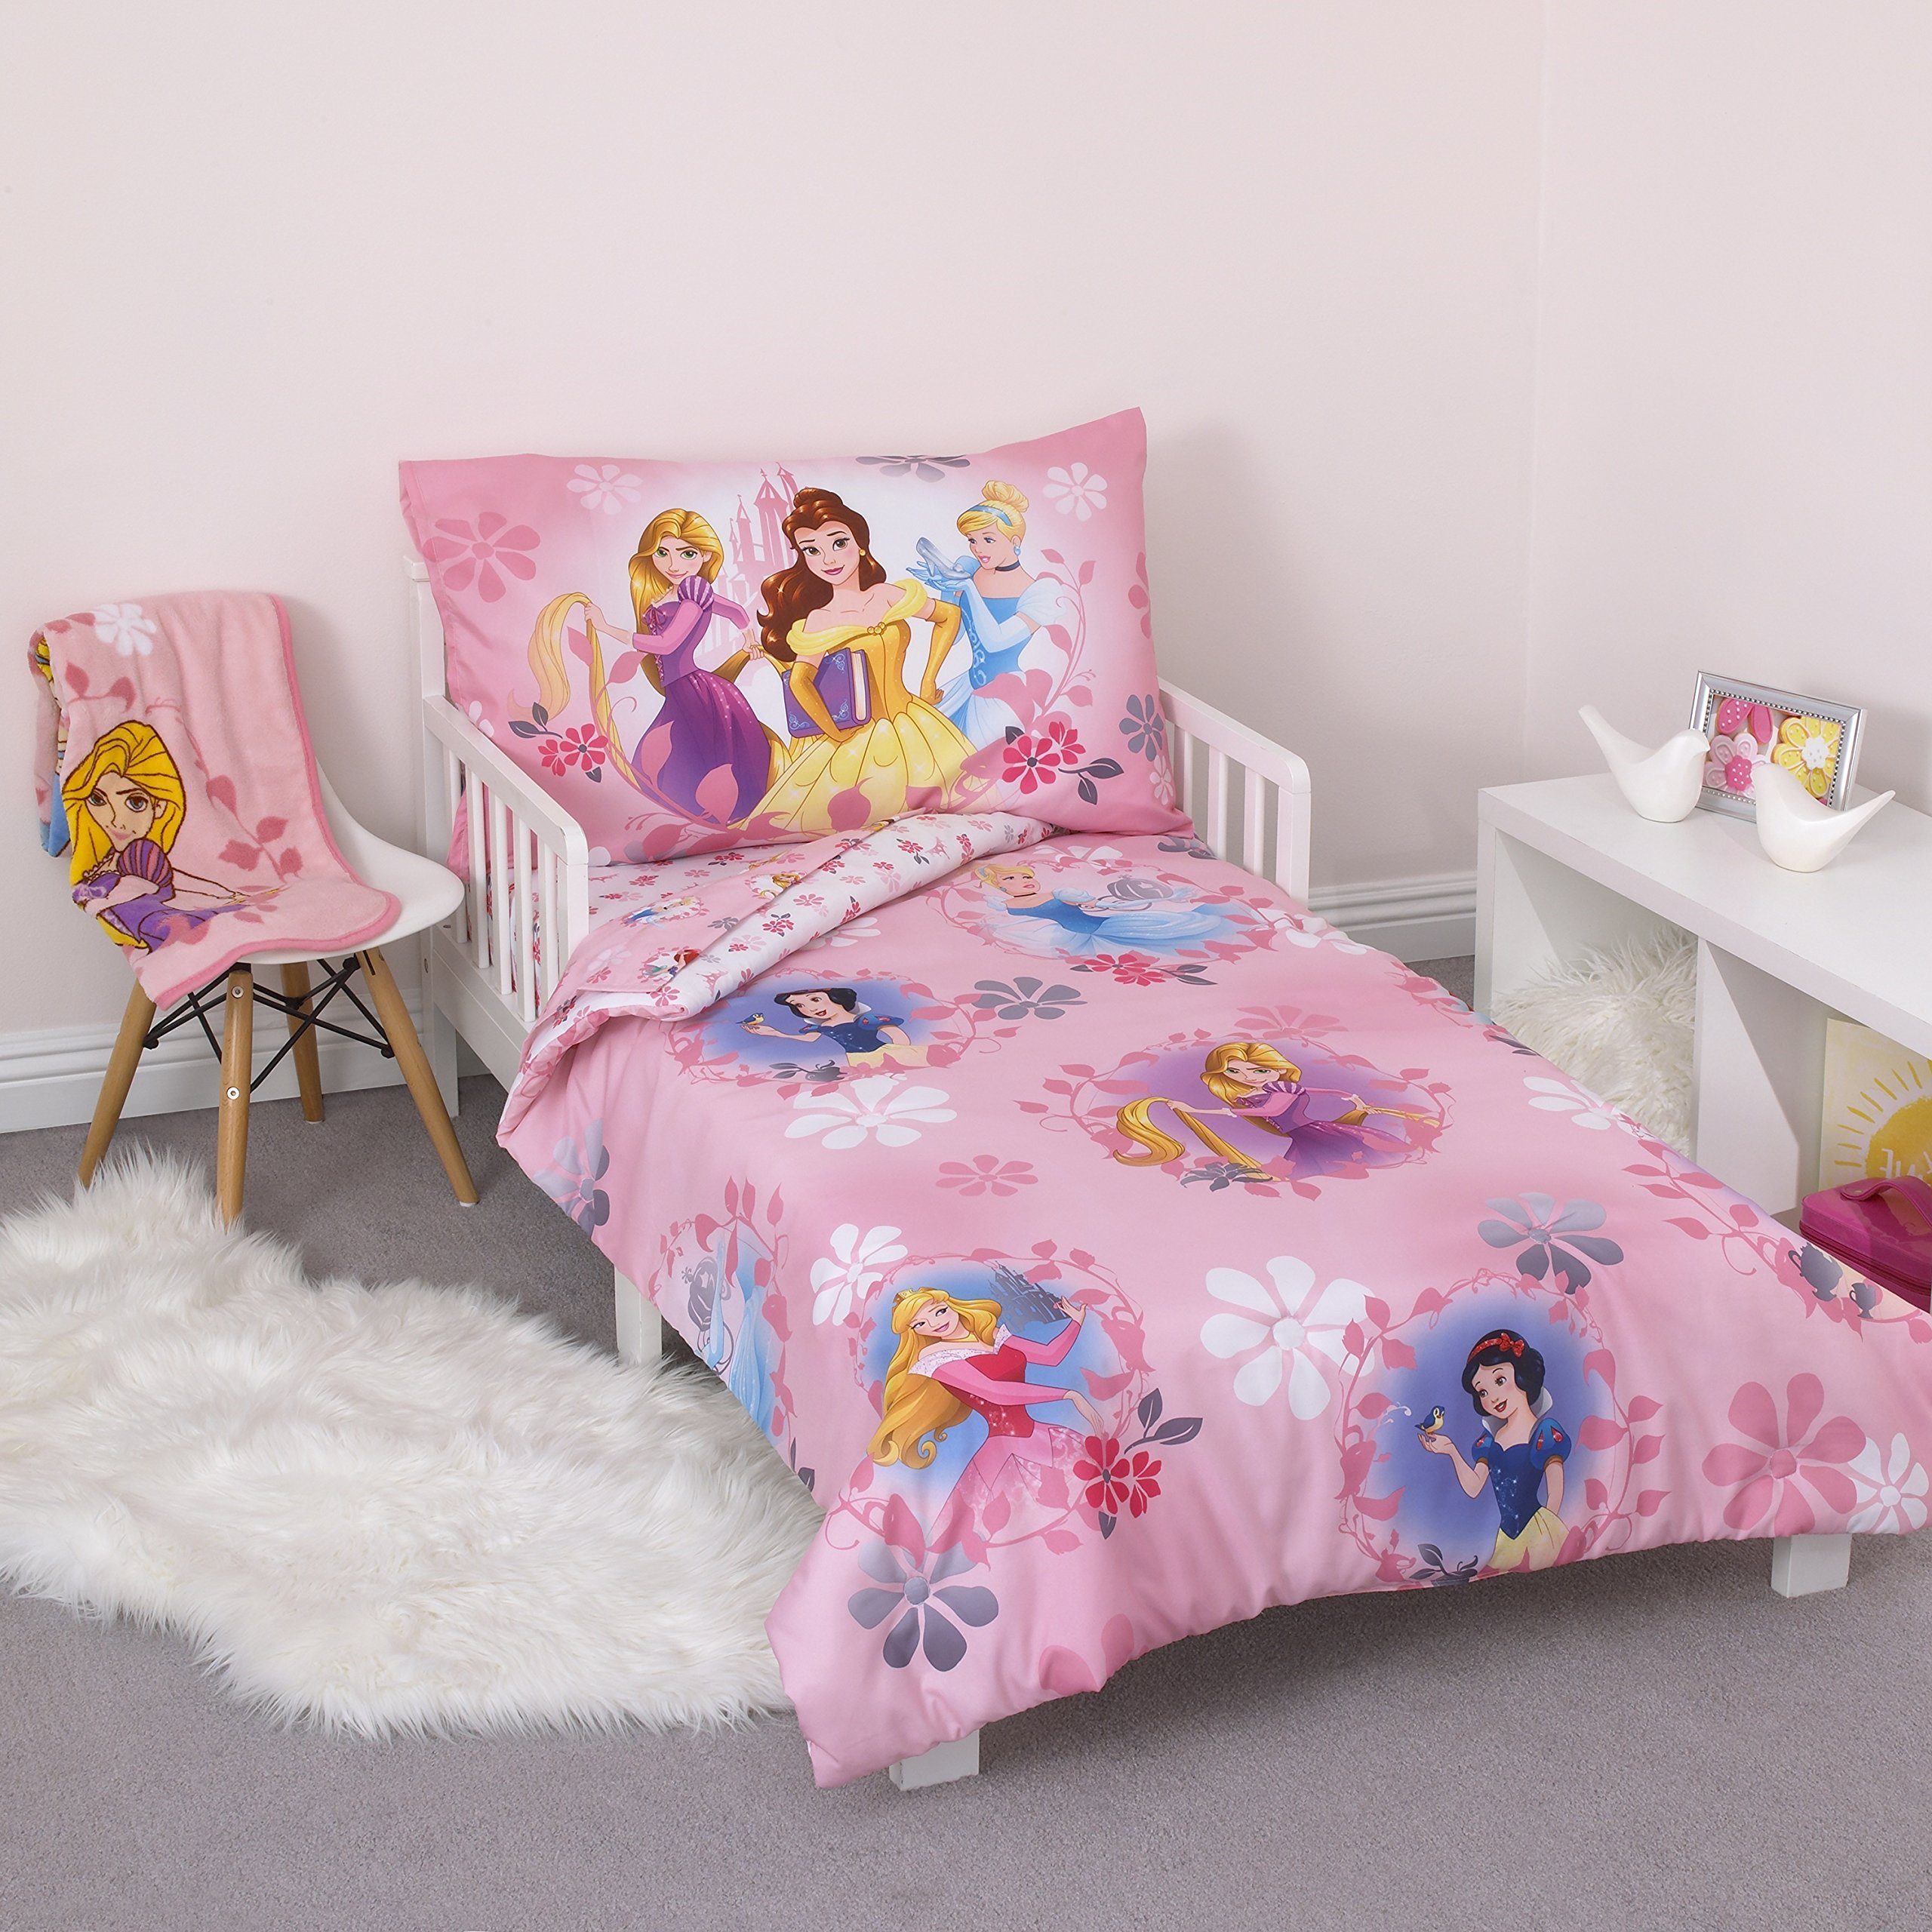 Disney Pretty Princess Toddler Bed, 4 Piece Set, Pink by Disney